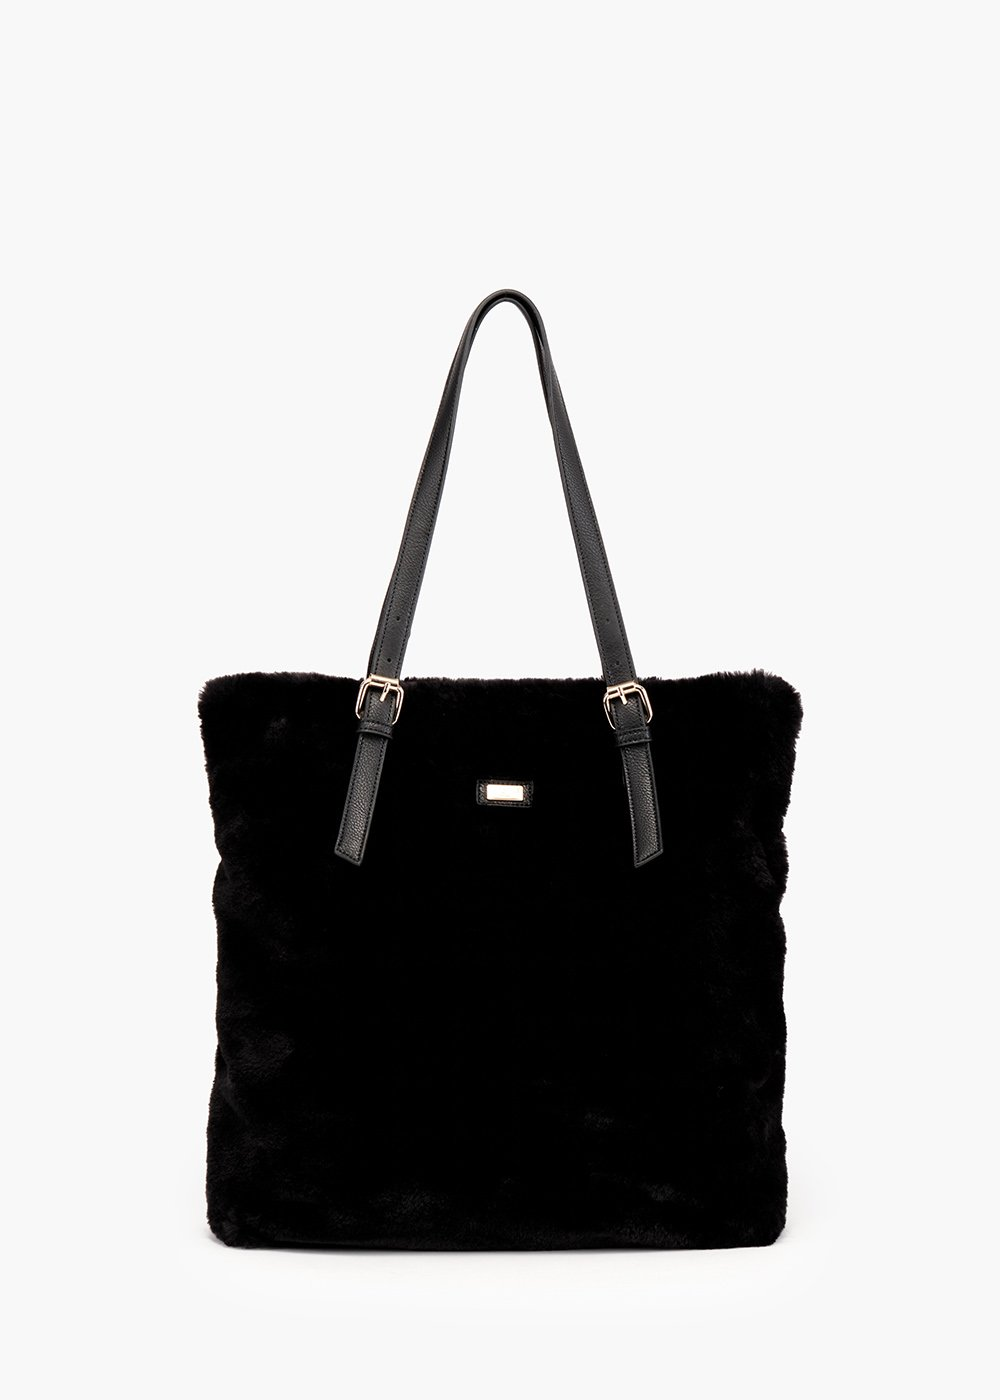 Shopping bag Buly in eco-fur and faux leather inserts - Black - Woman